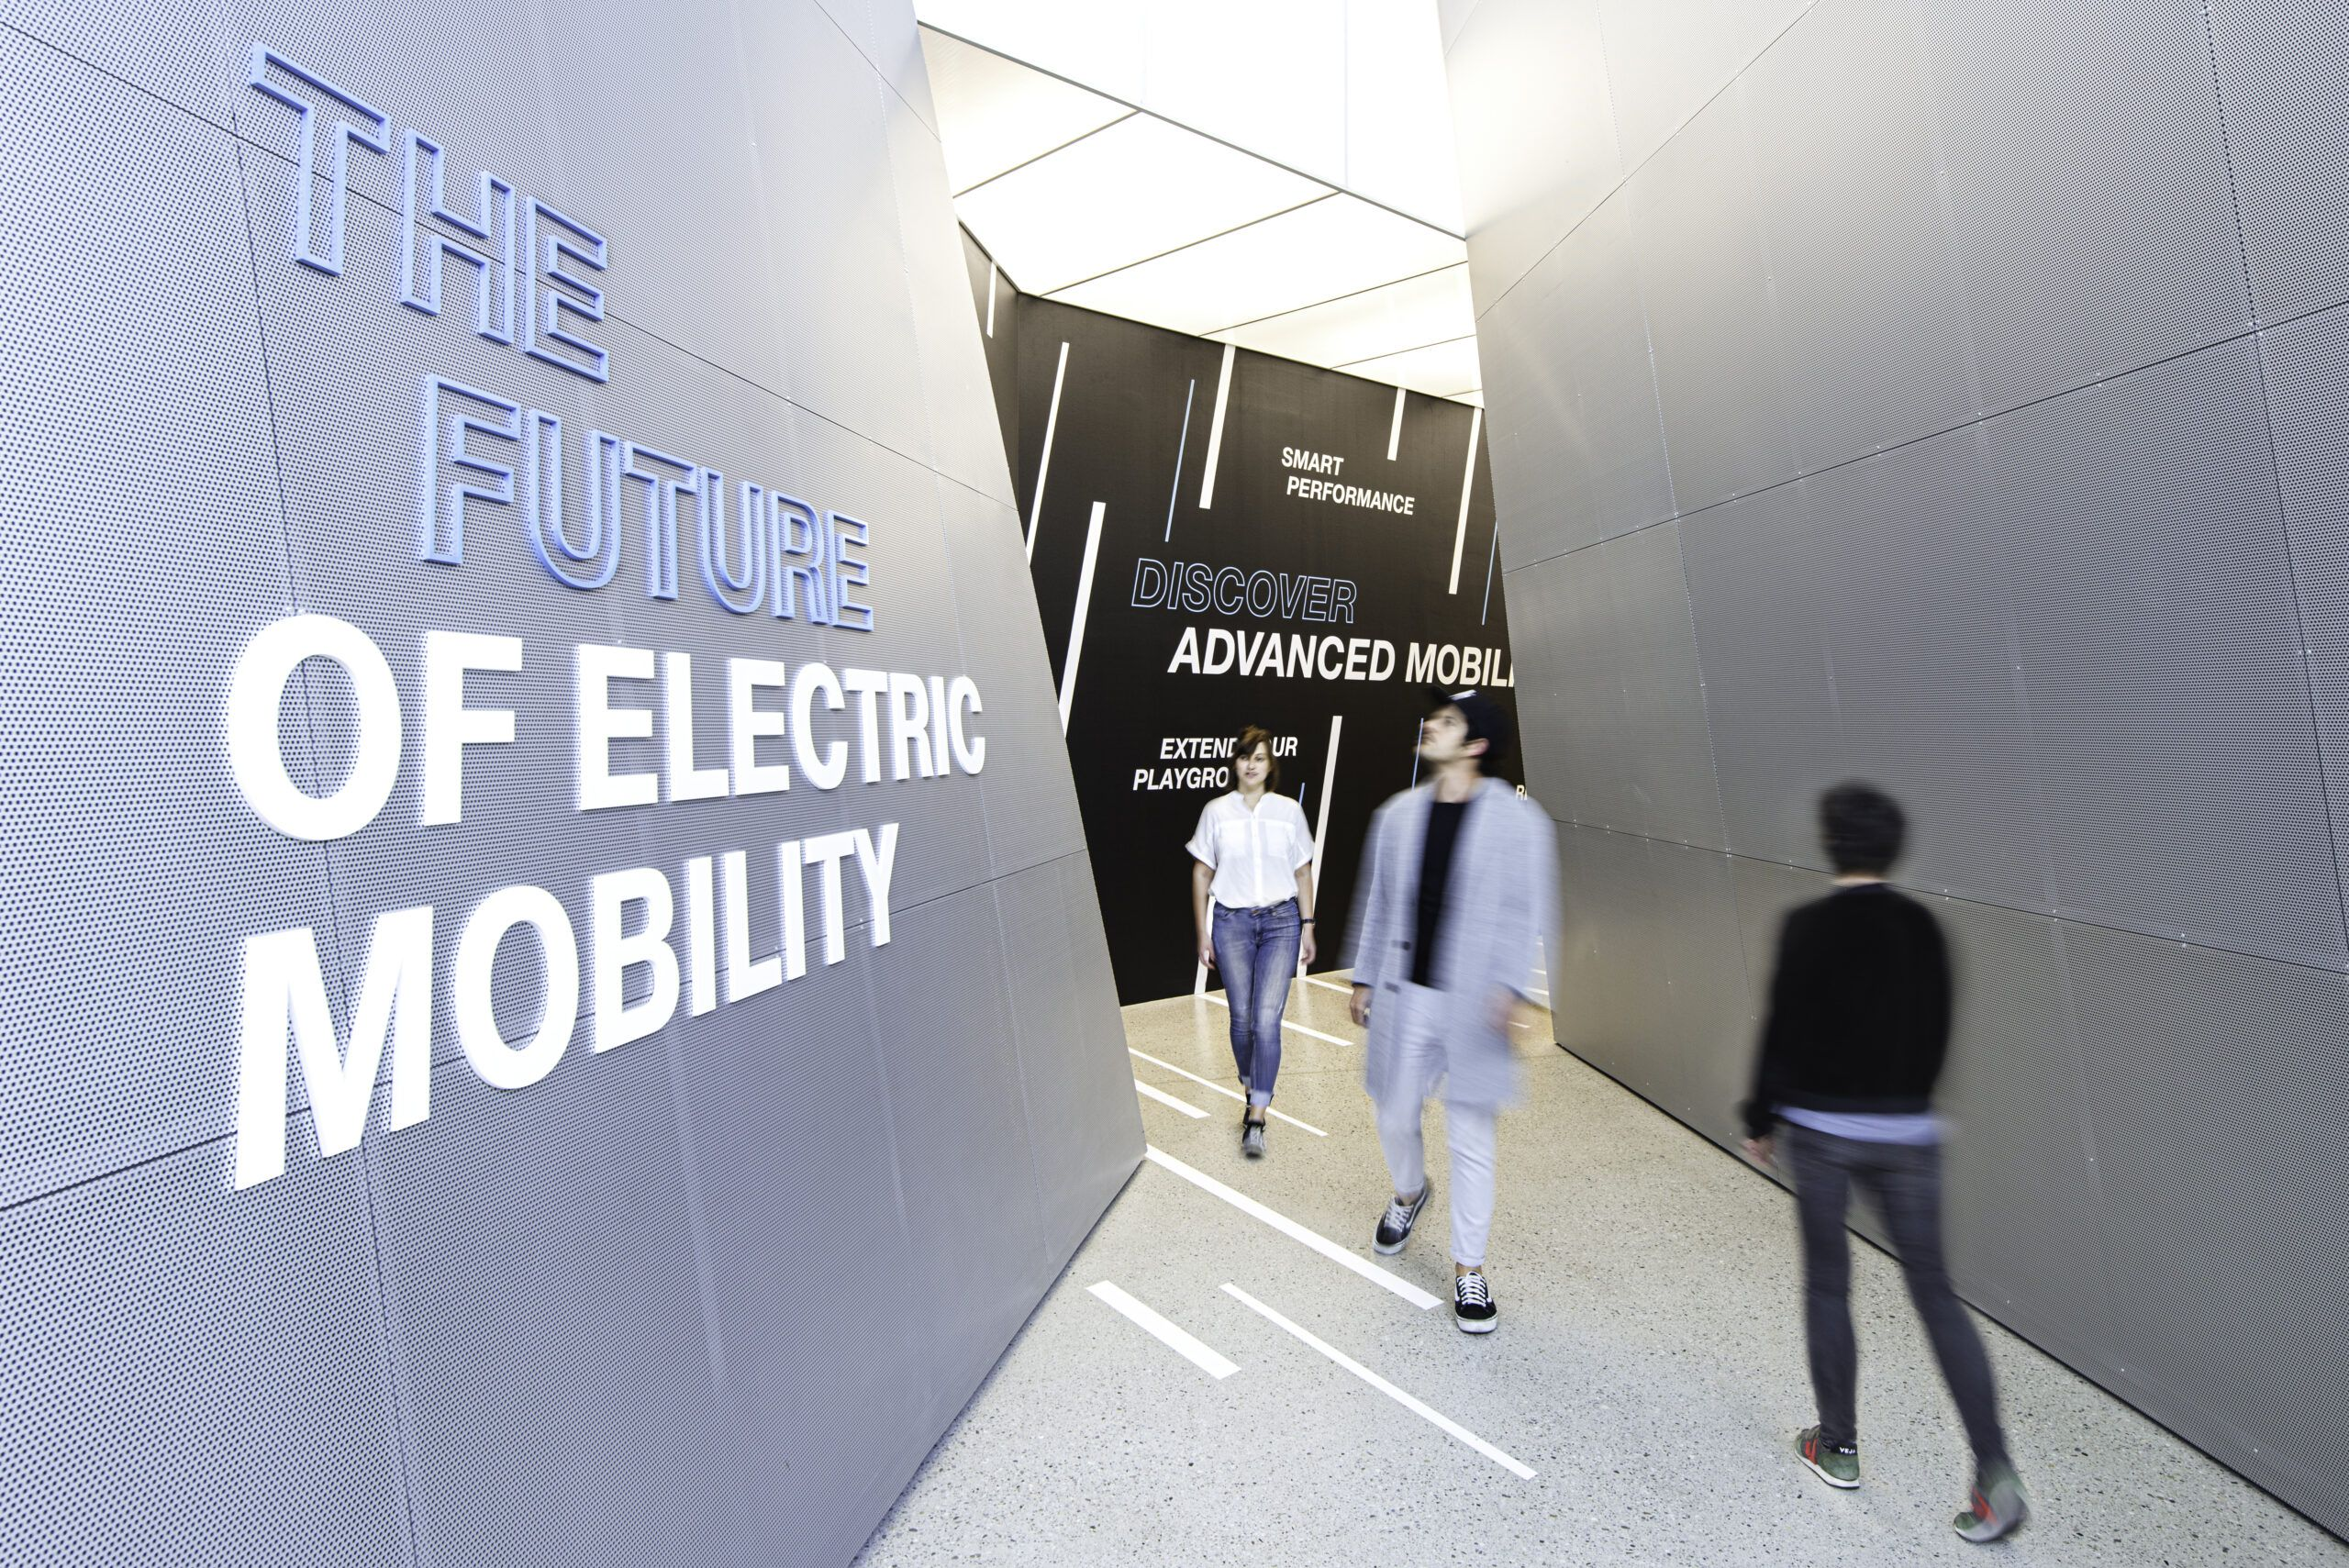 """SPECIAL EXHIBITION """"THE FUTURE OF ELECTRIC MOBILITY"""""""